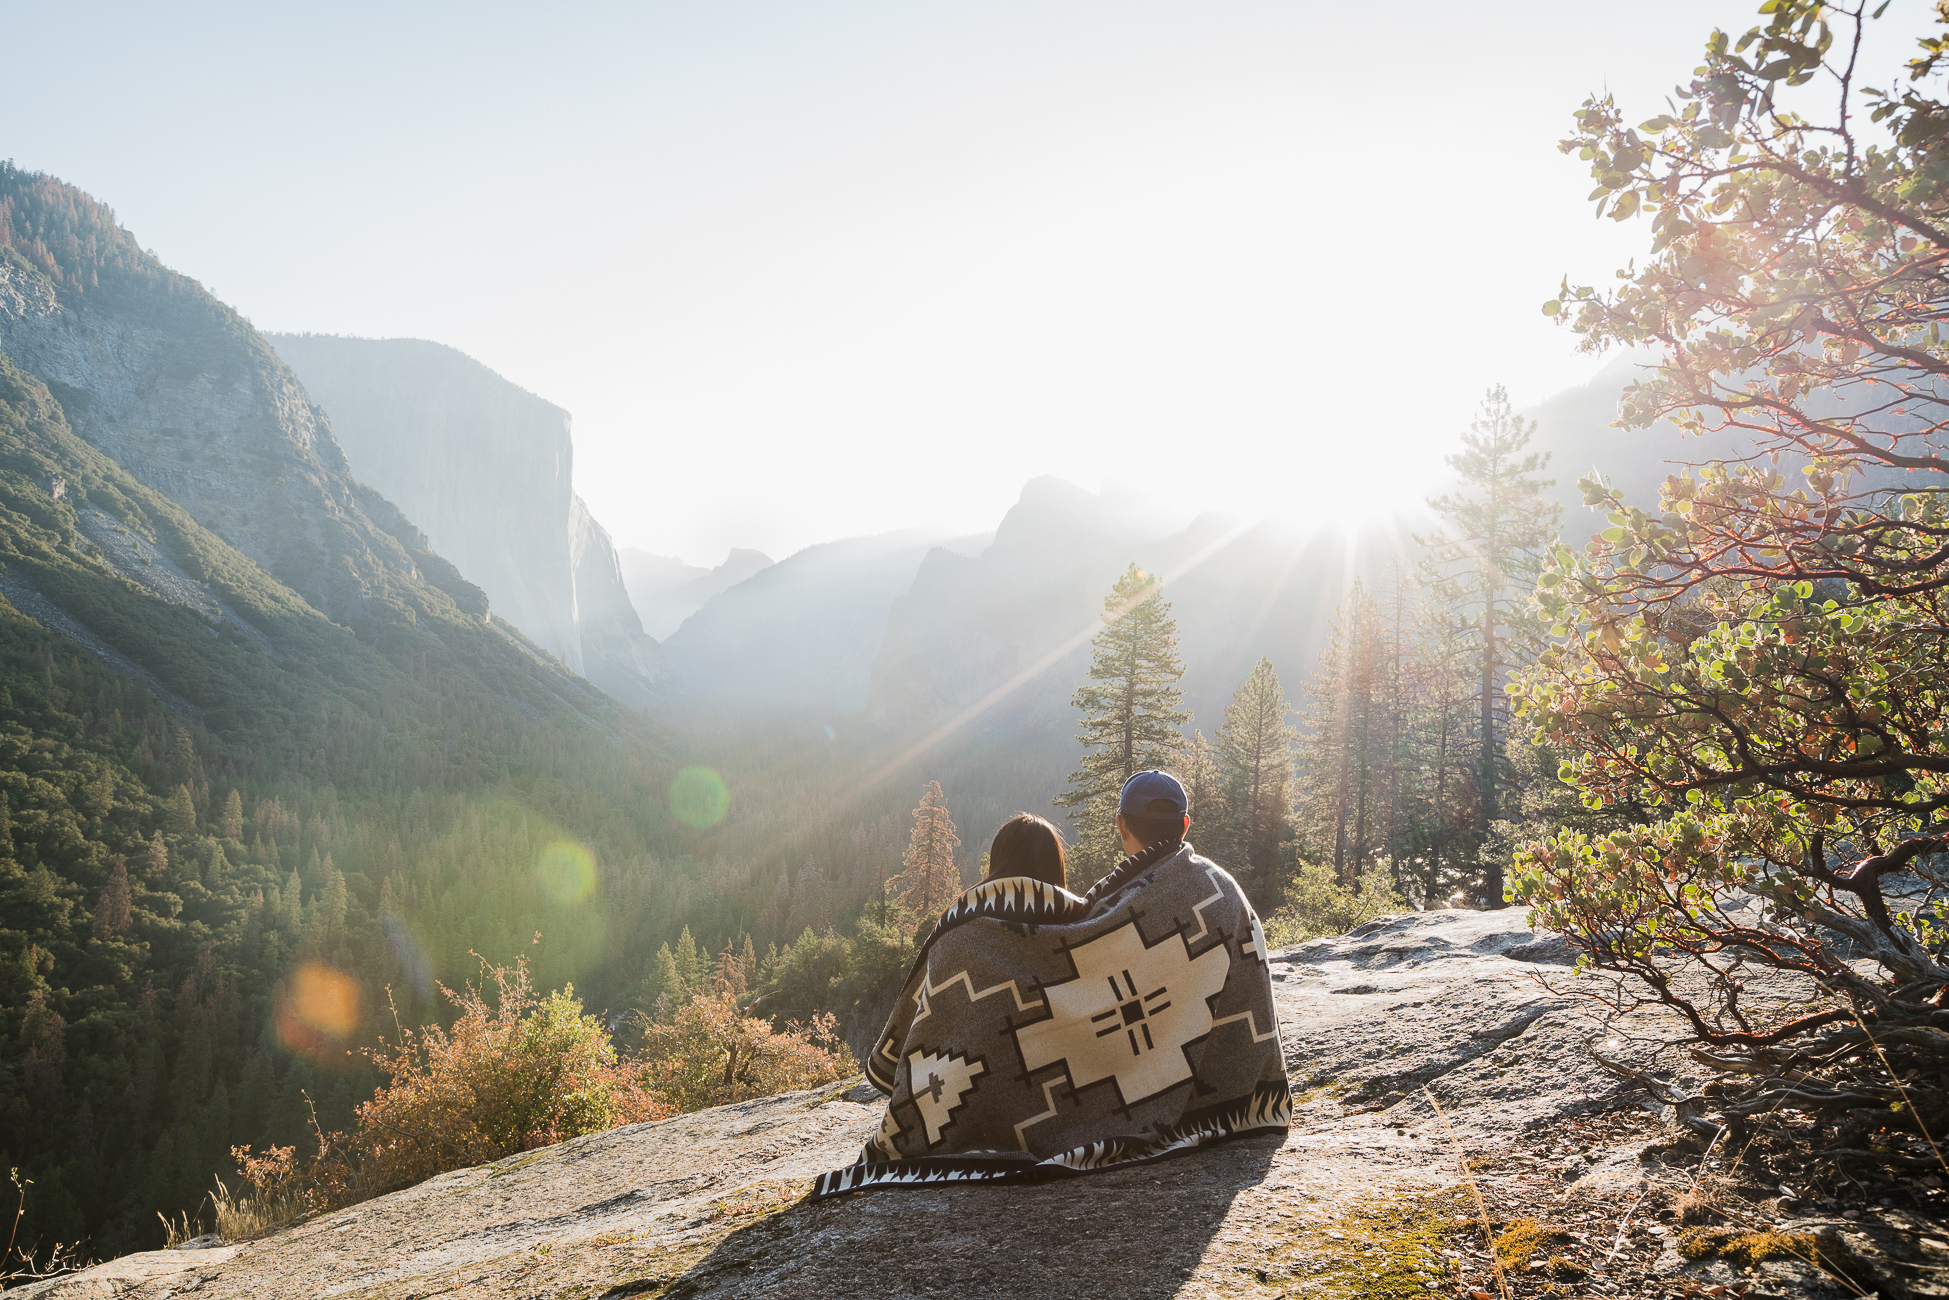 Sunrise at Tunnel View in Yosemite National Park / See & Savour